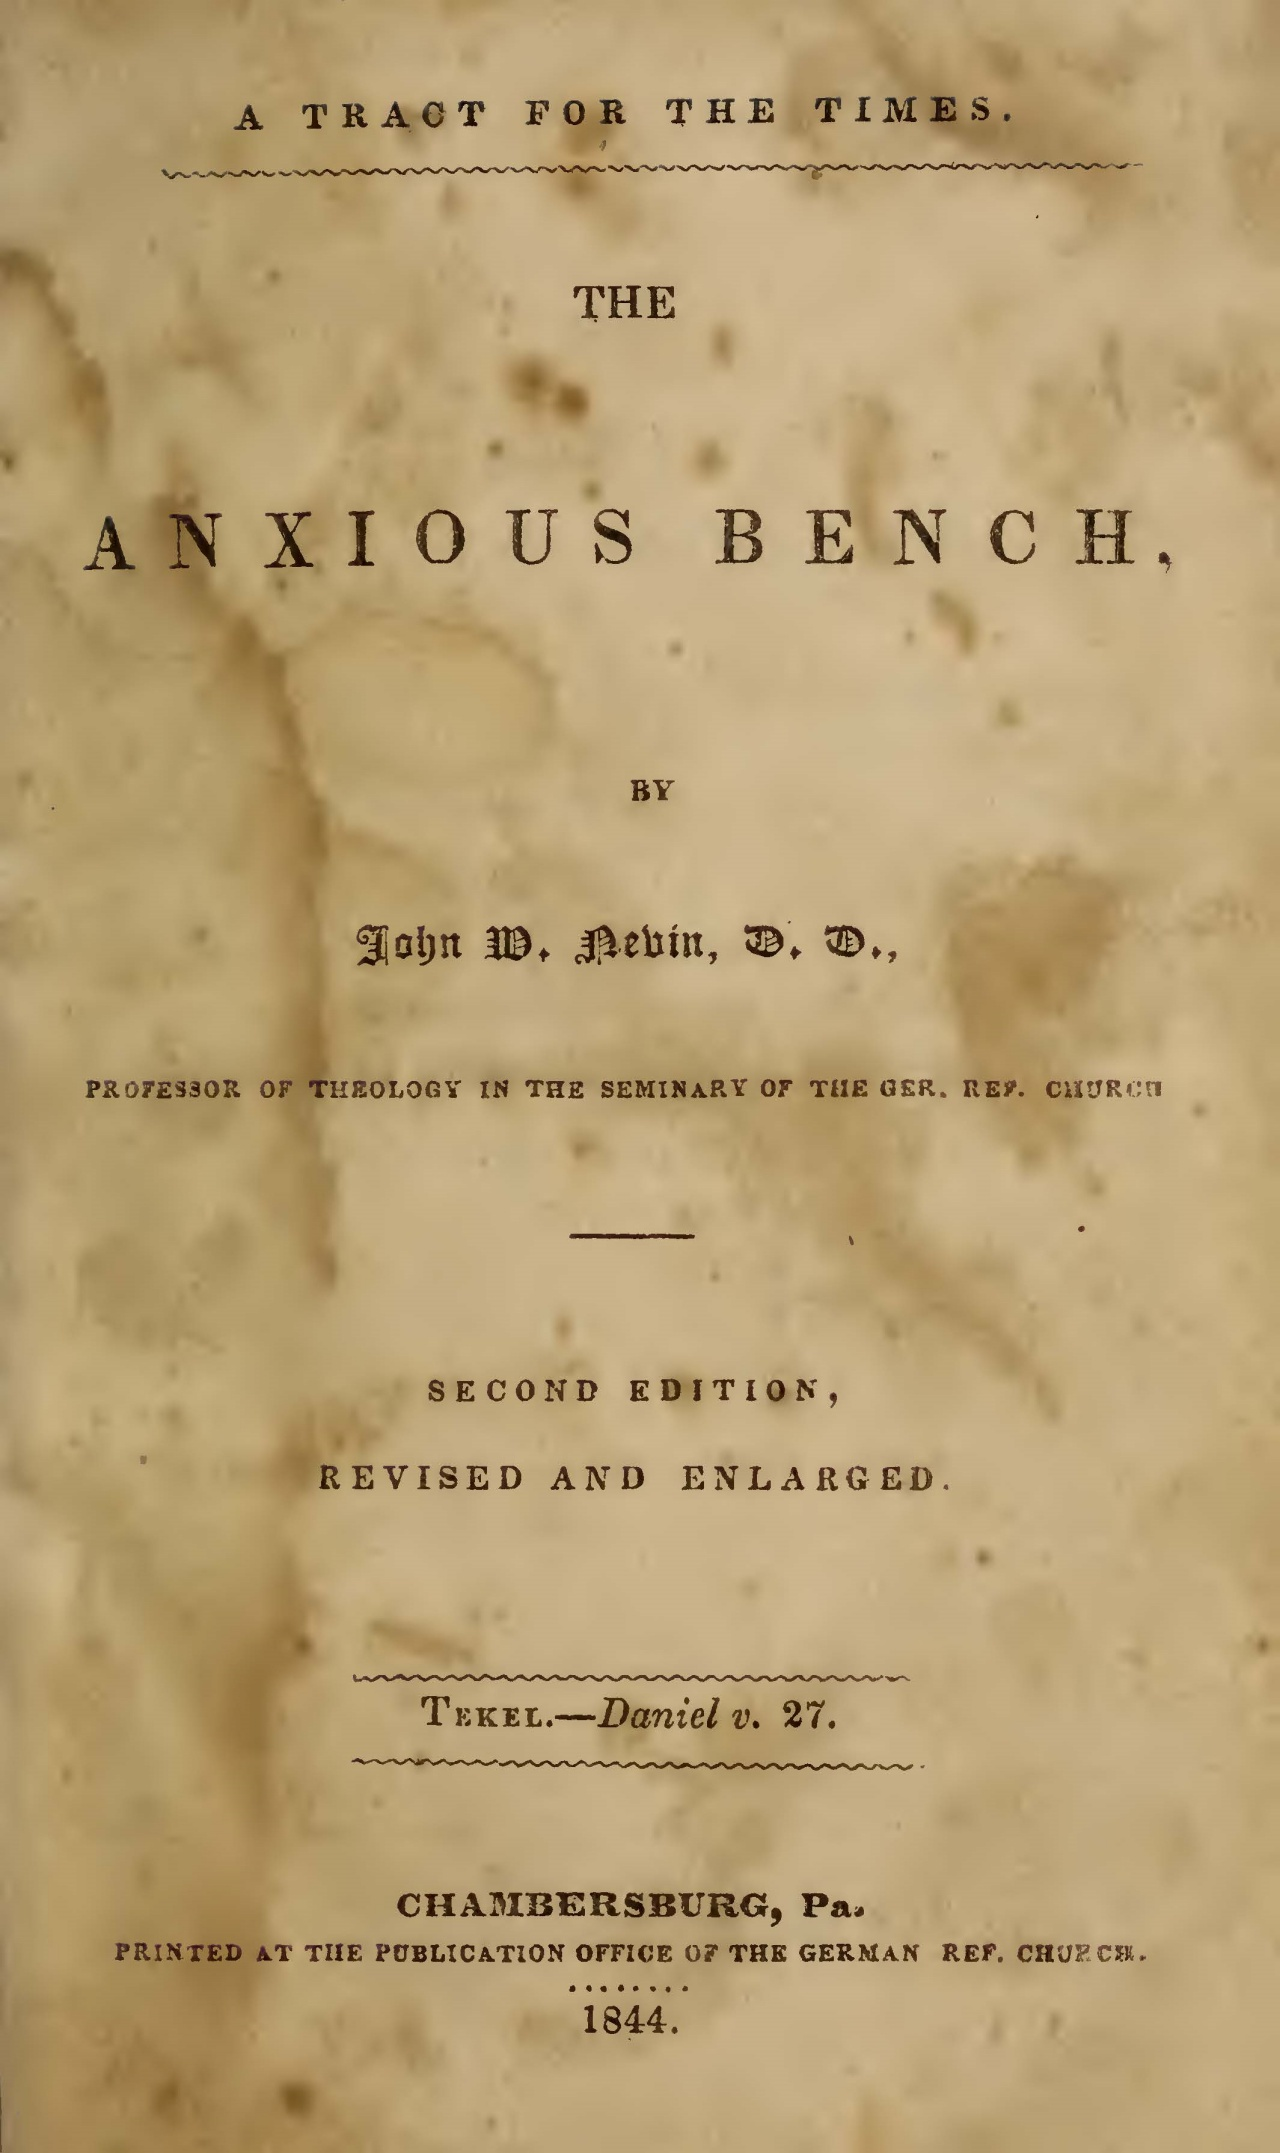 Nevin, John Williamson, The Anxious Bench Title Page.jpg